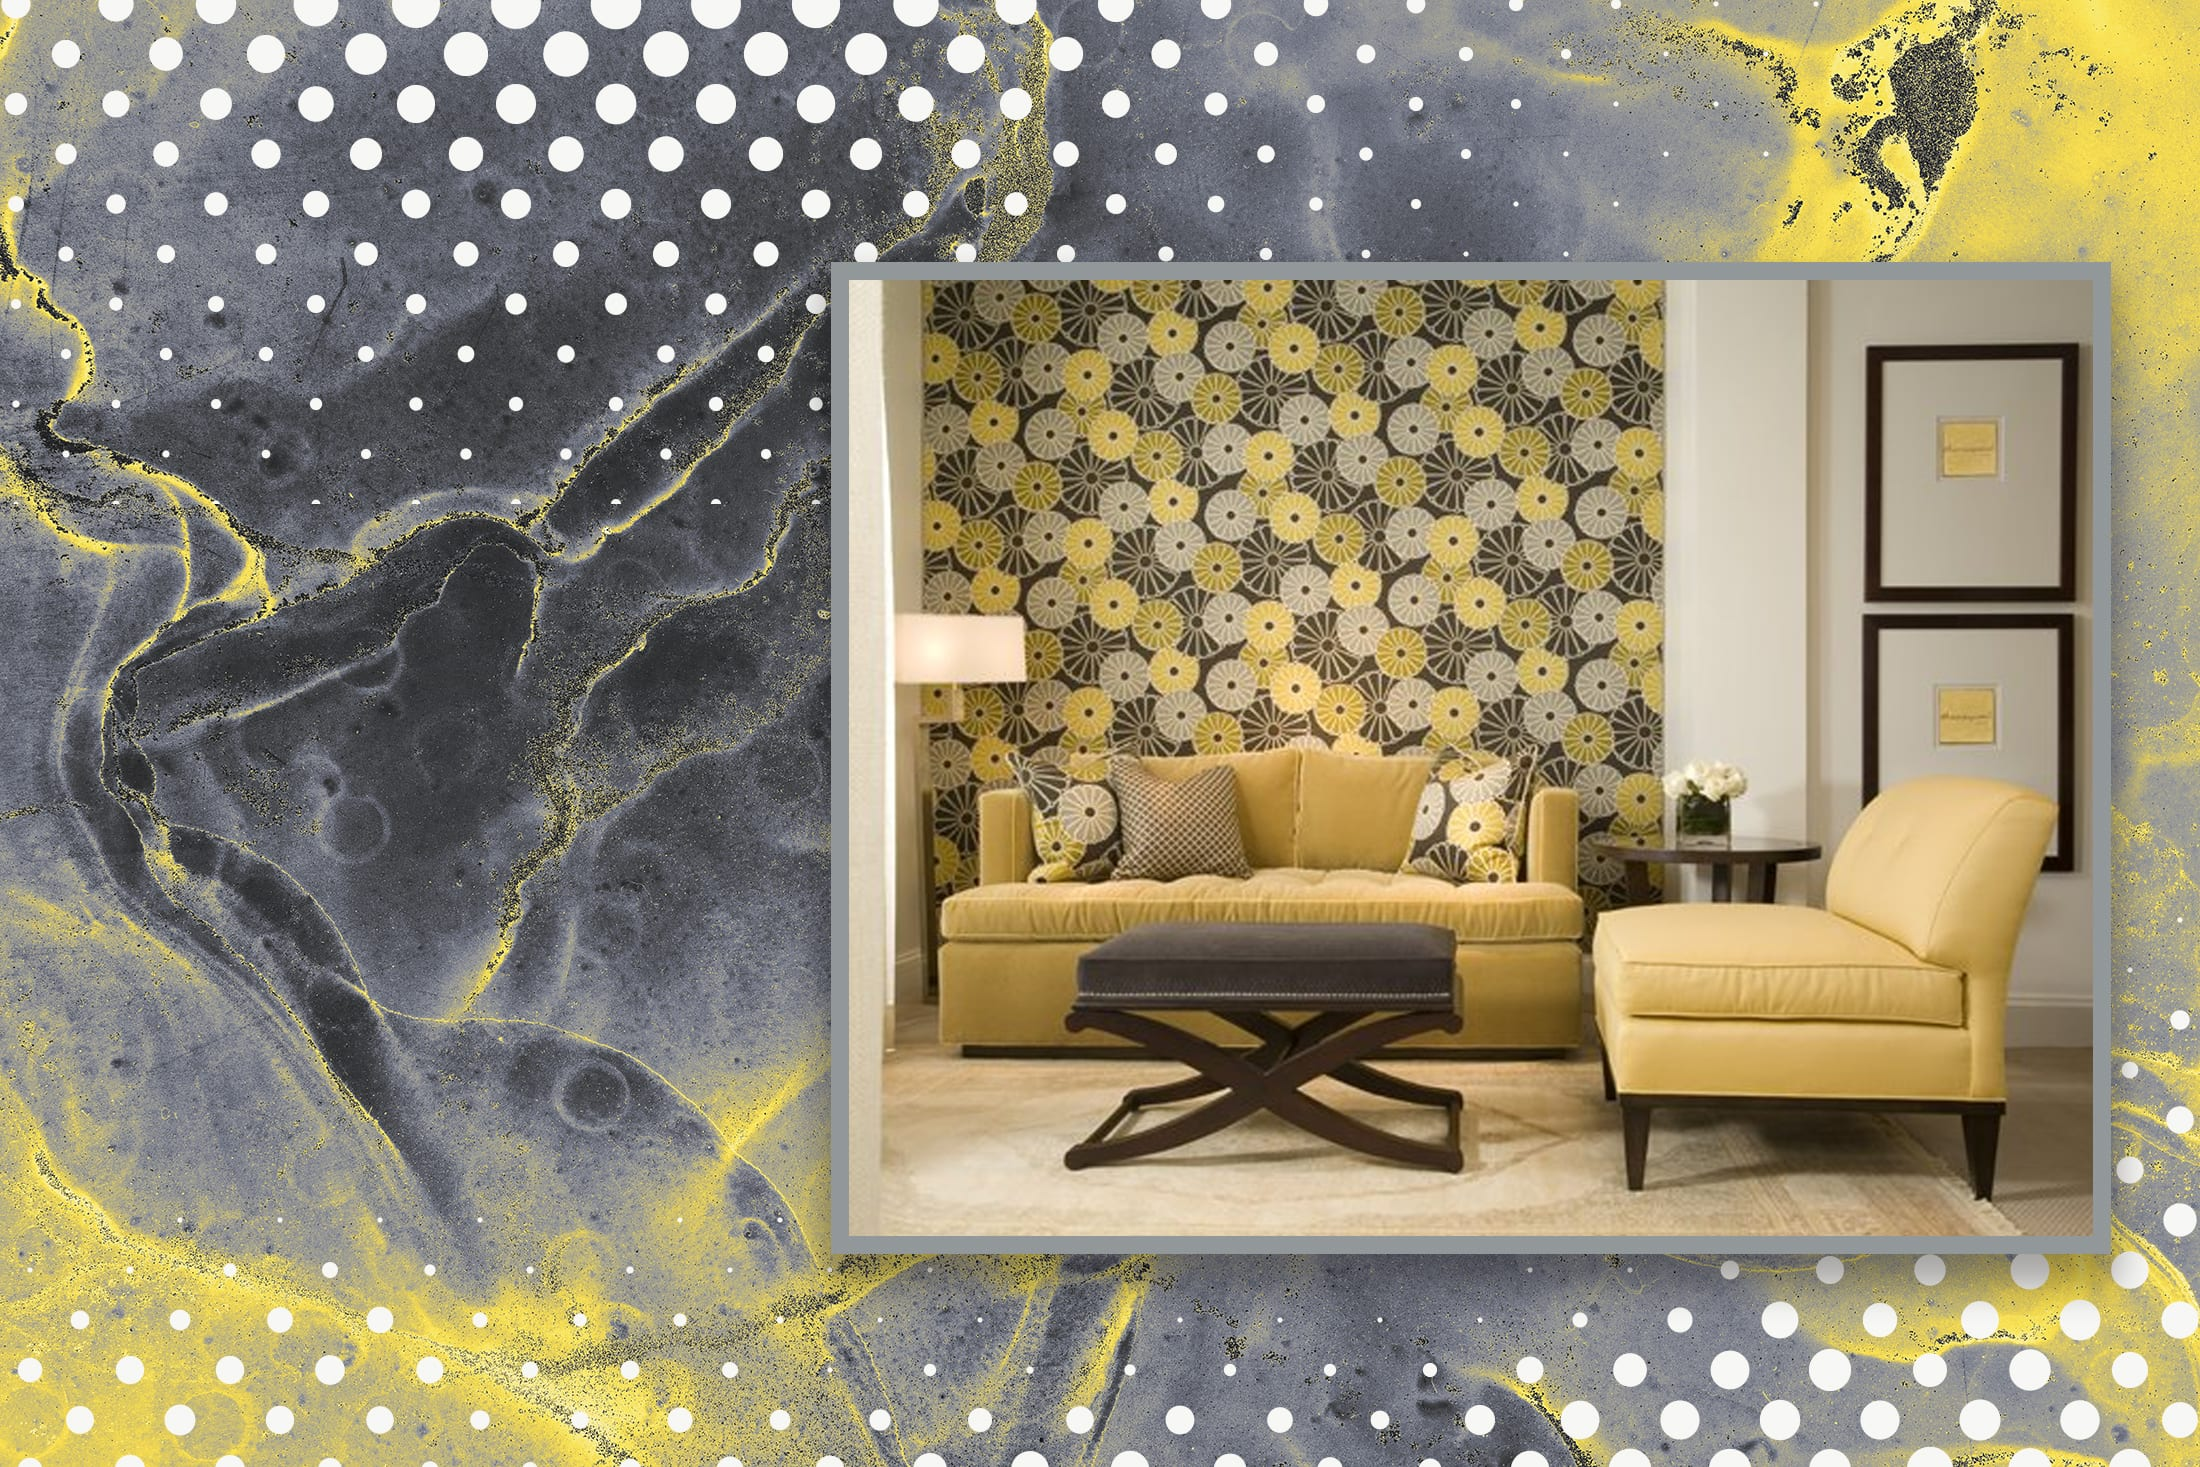 Ultimate Grey and Illuminating Yellow as used in wall patterns.